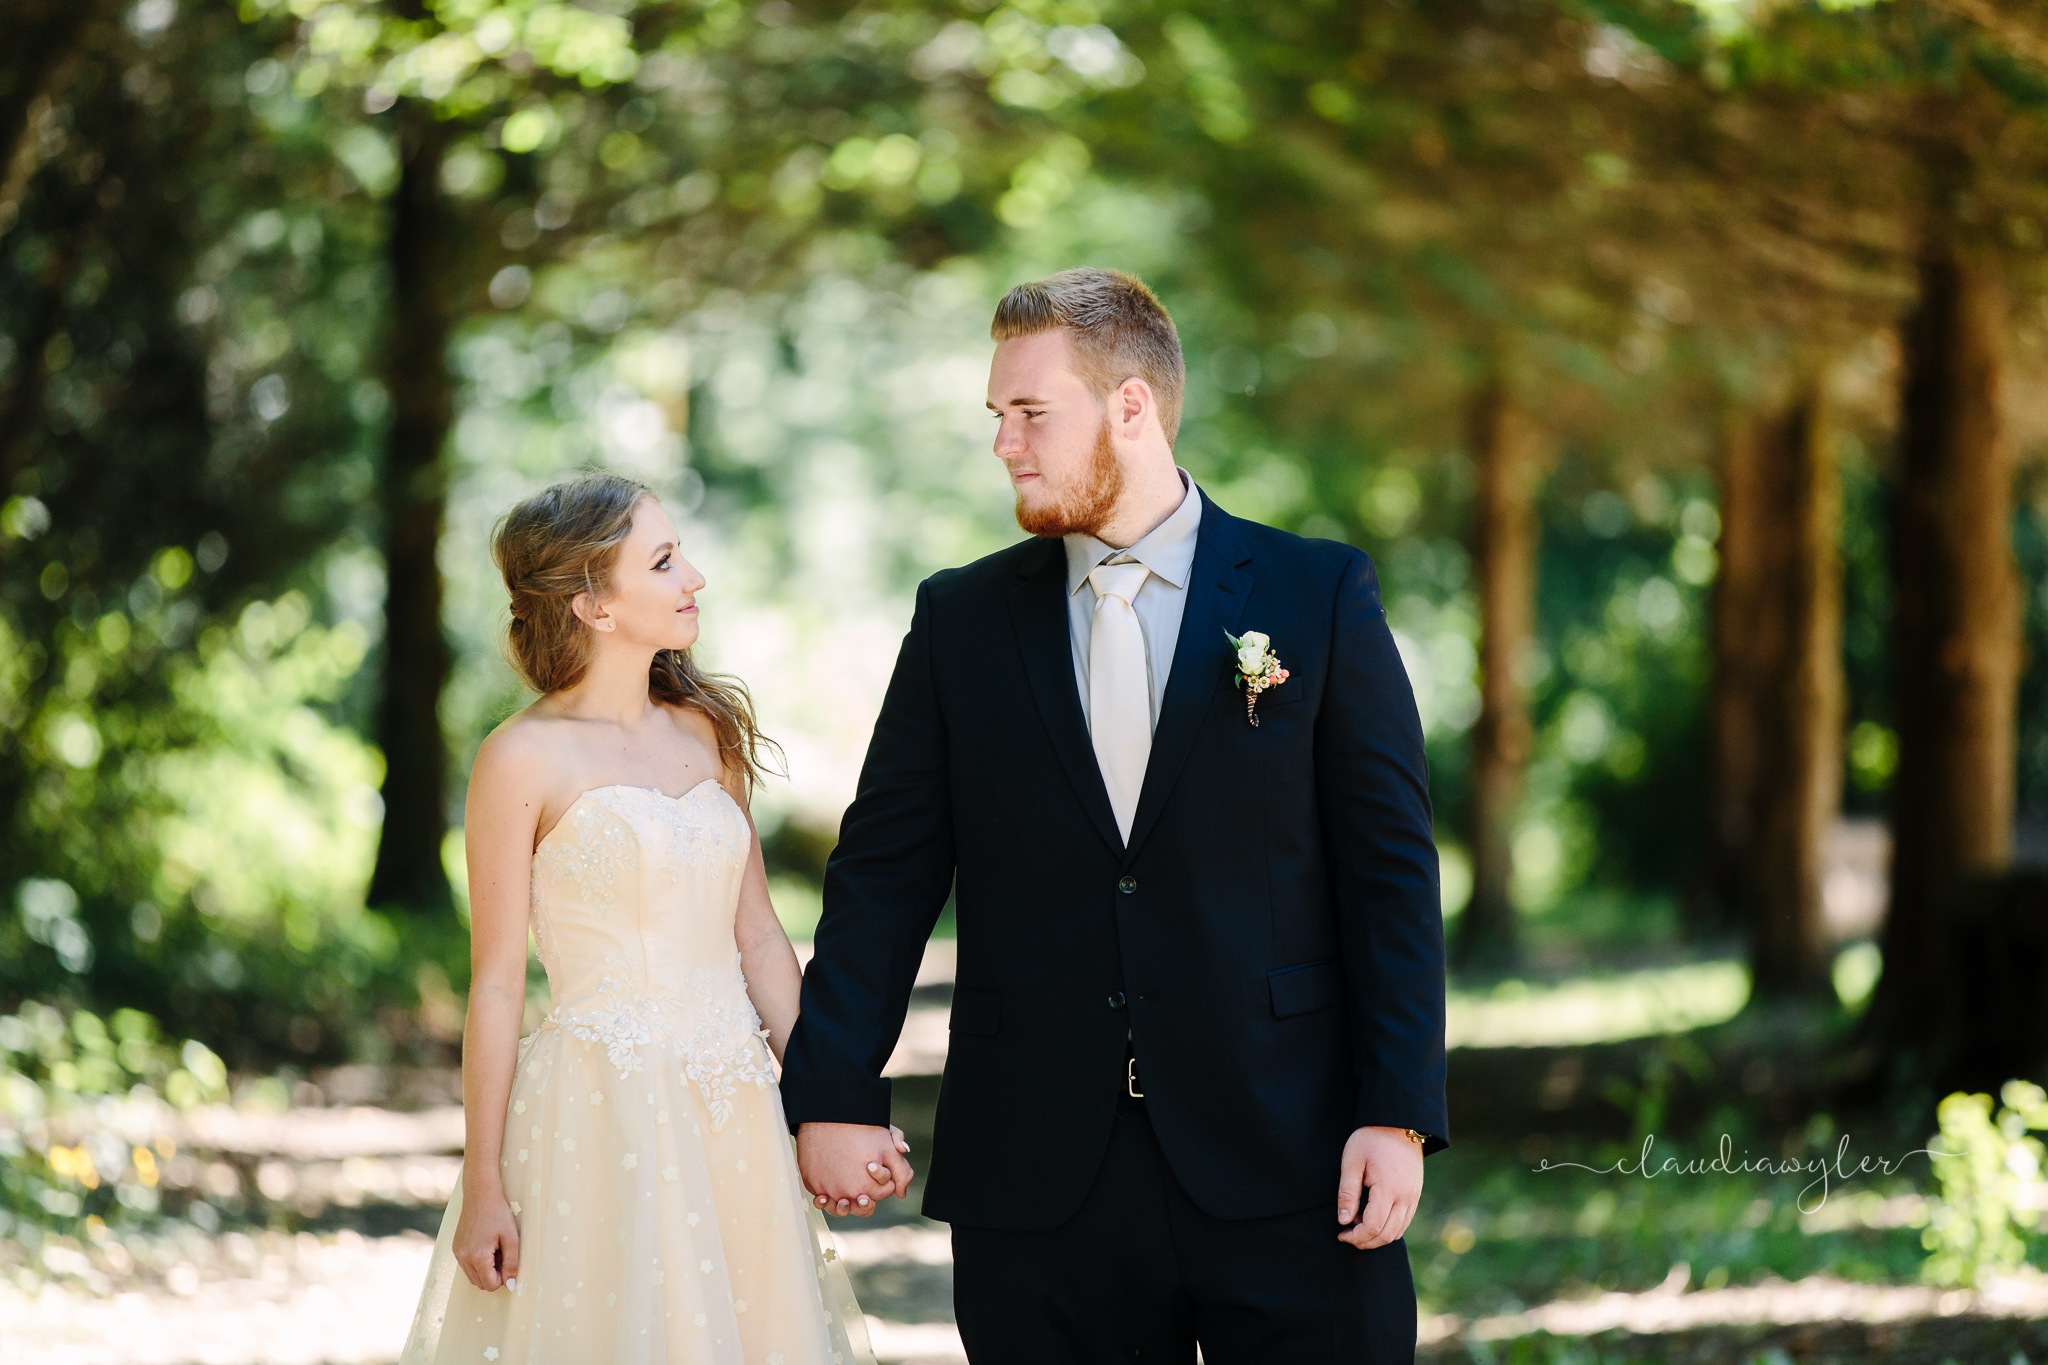 | Abbotsford, Langley, Chilliwack, and the Fraser Valley, BC Family, Prom, Lifestyle, Wedding Photographer | Claudia Wyler Photography